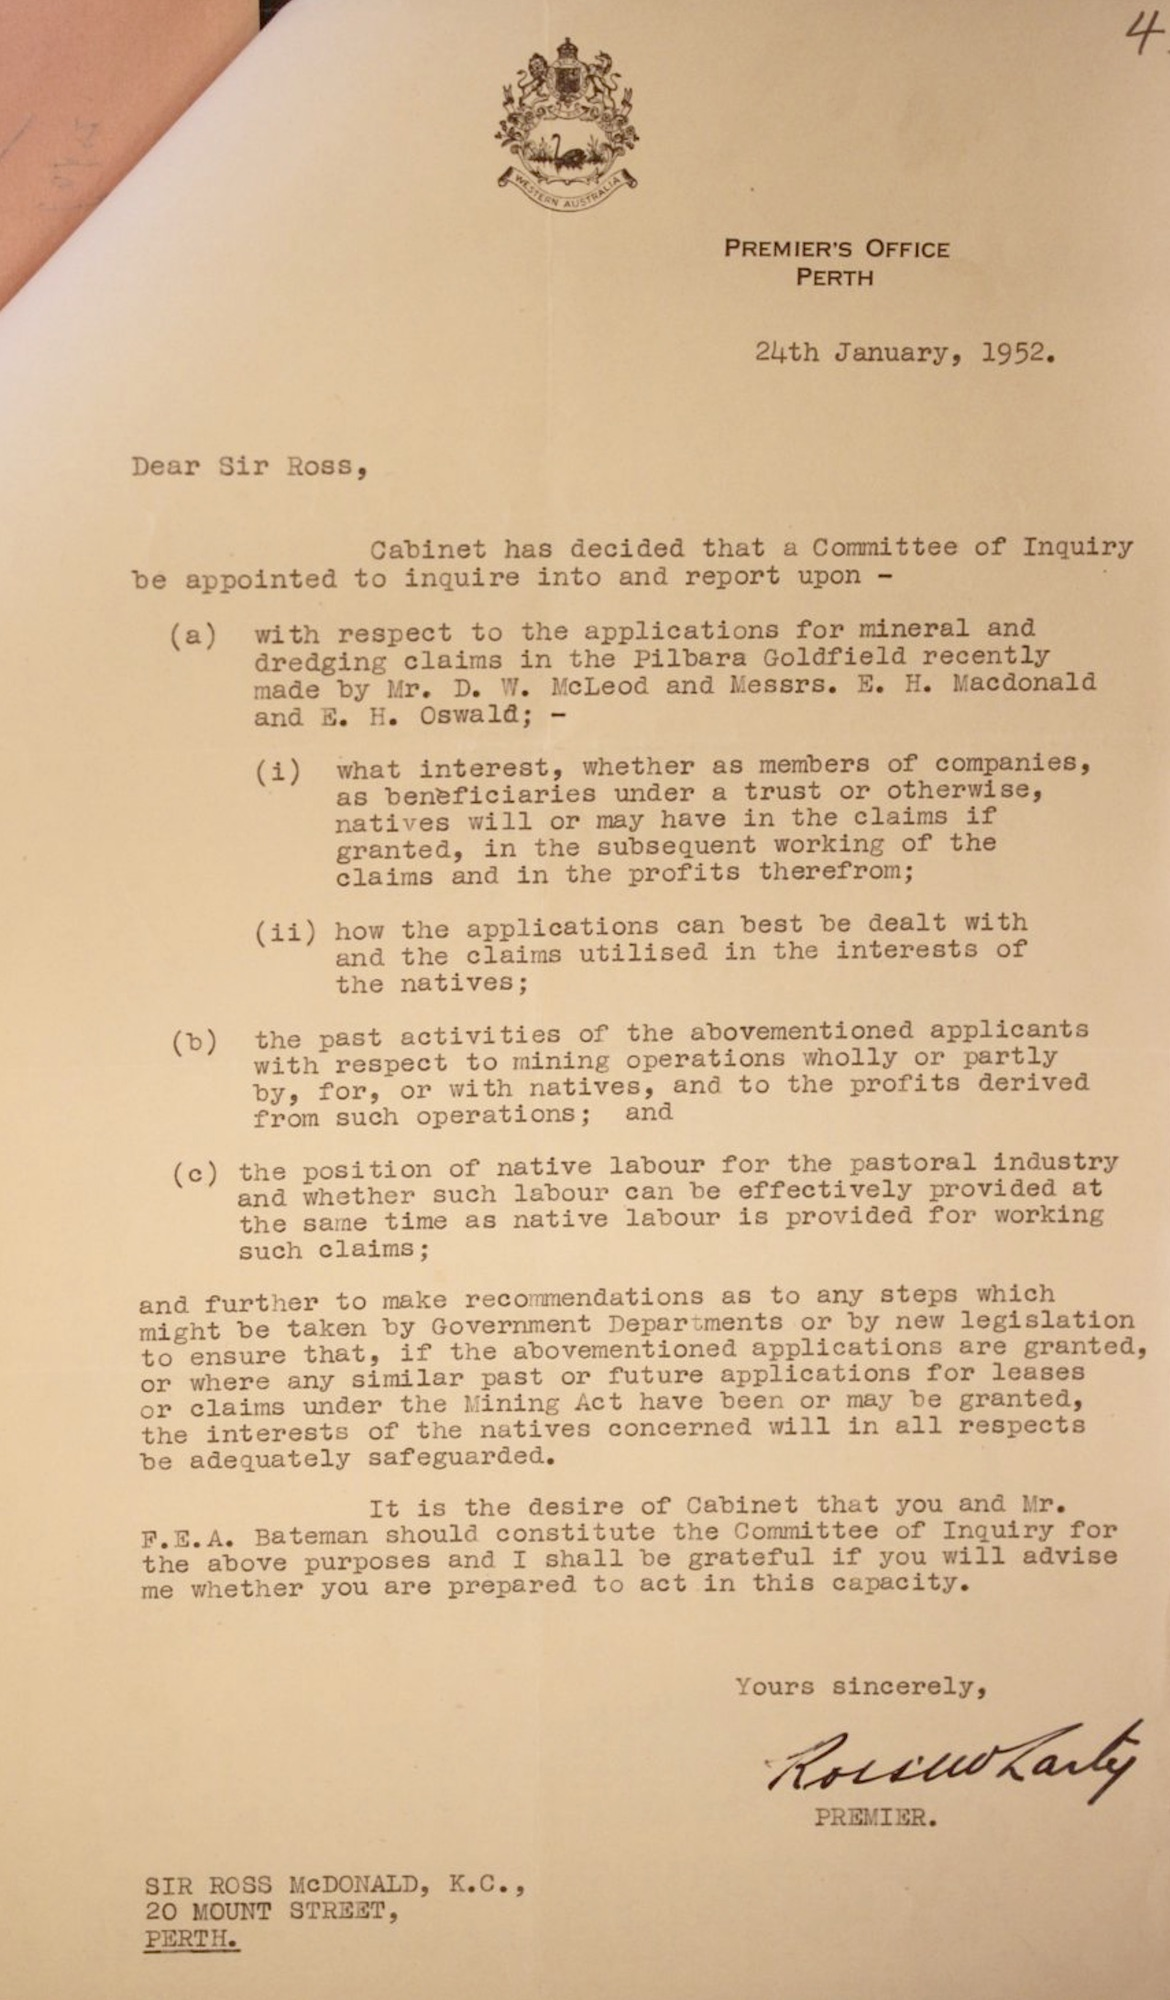 Premier Ross McLarty to Sir Ross McDonald, 24 January 1952